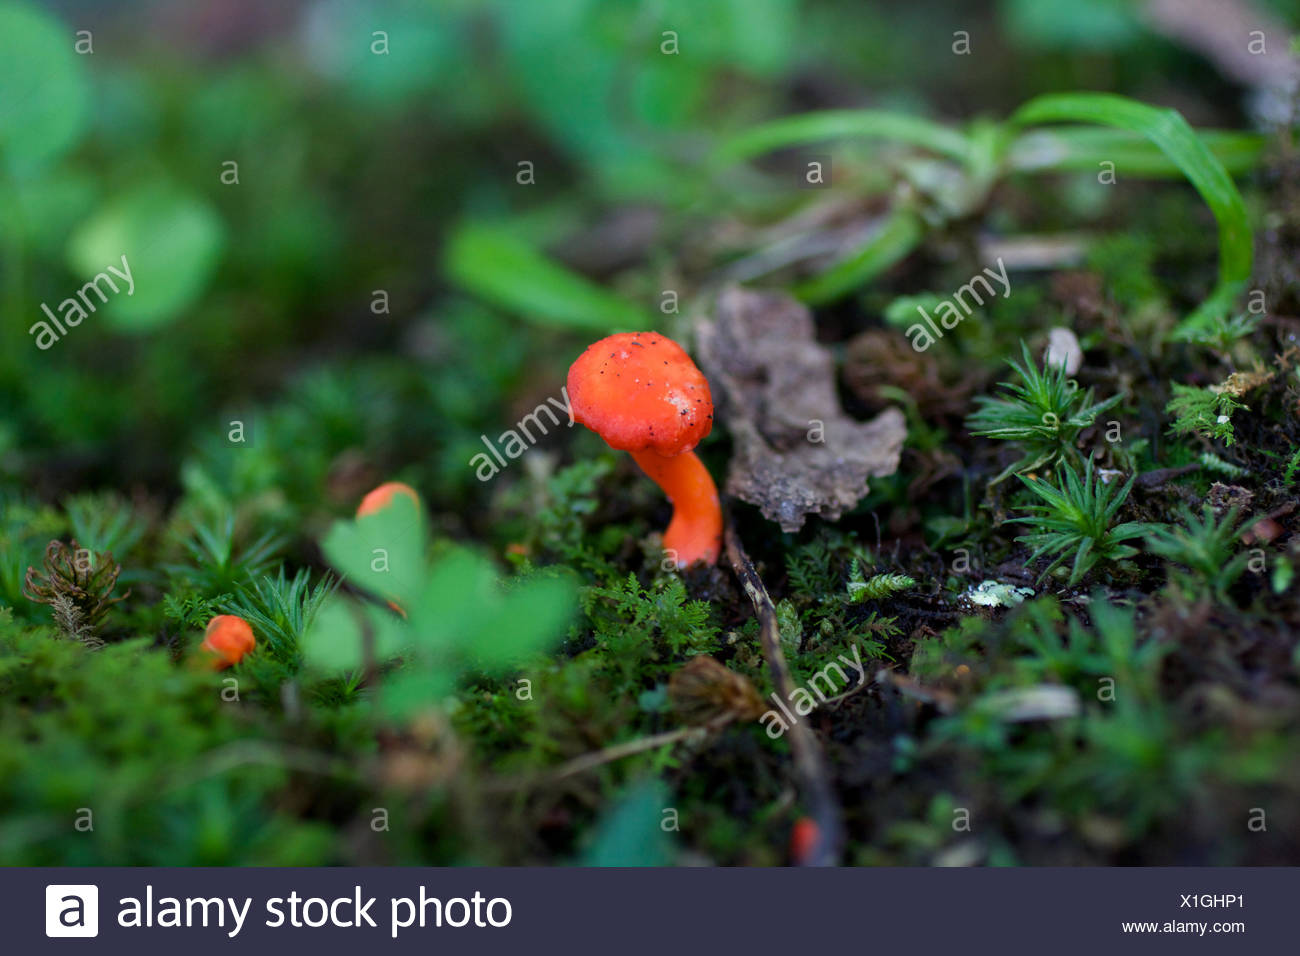 A tiny bright reddish orange mushroom, most likely a Hygrocybe. - Stock Image